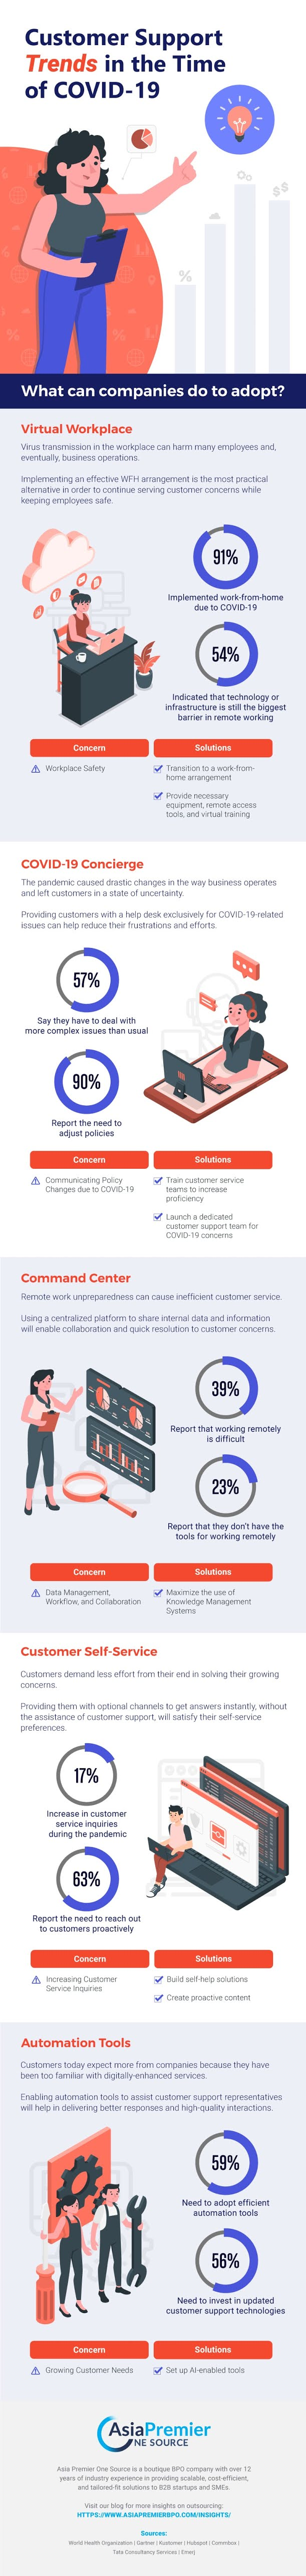 Customer Support Trends in the Time of COVID-19 #infographic #Business #Infographic #Pandemic #Customer Support #Trends #Covid-19